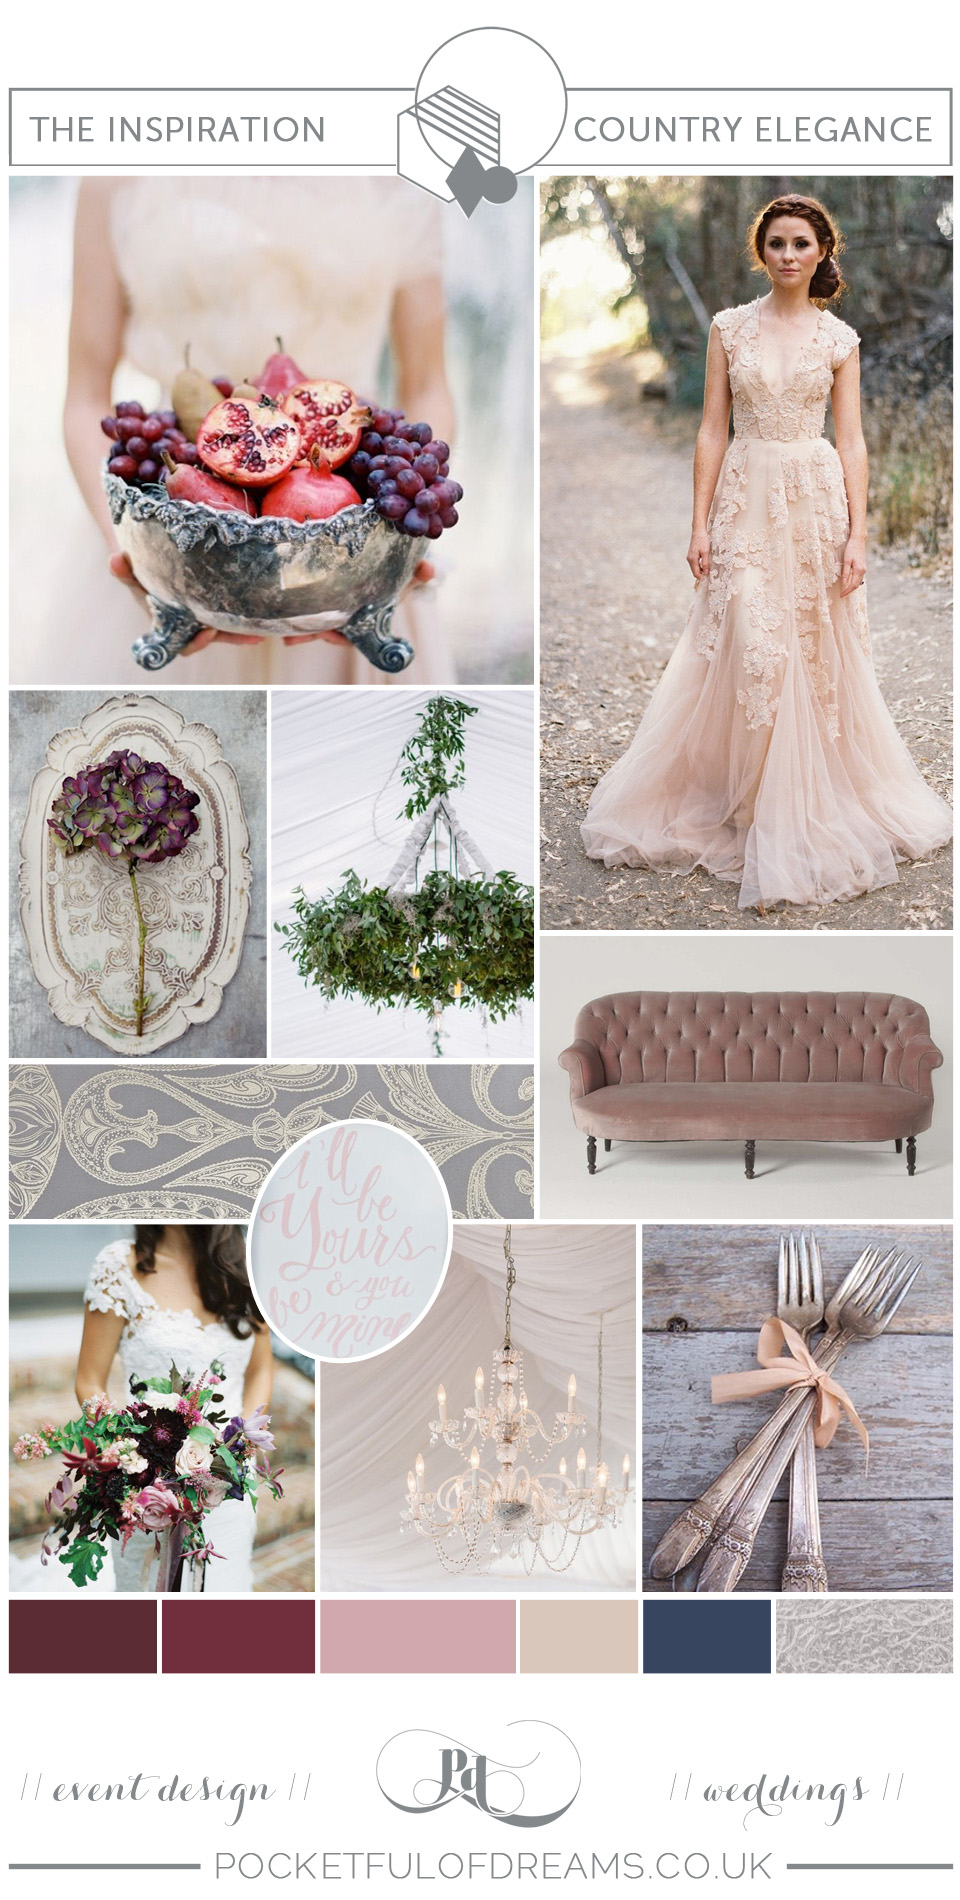 BRIDAL INSPIRATION BOARDS #77 ~ Elegant Country House Wedding (Get Inspired Mood + Inspiration Boards )